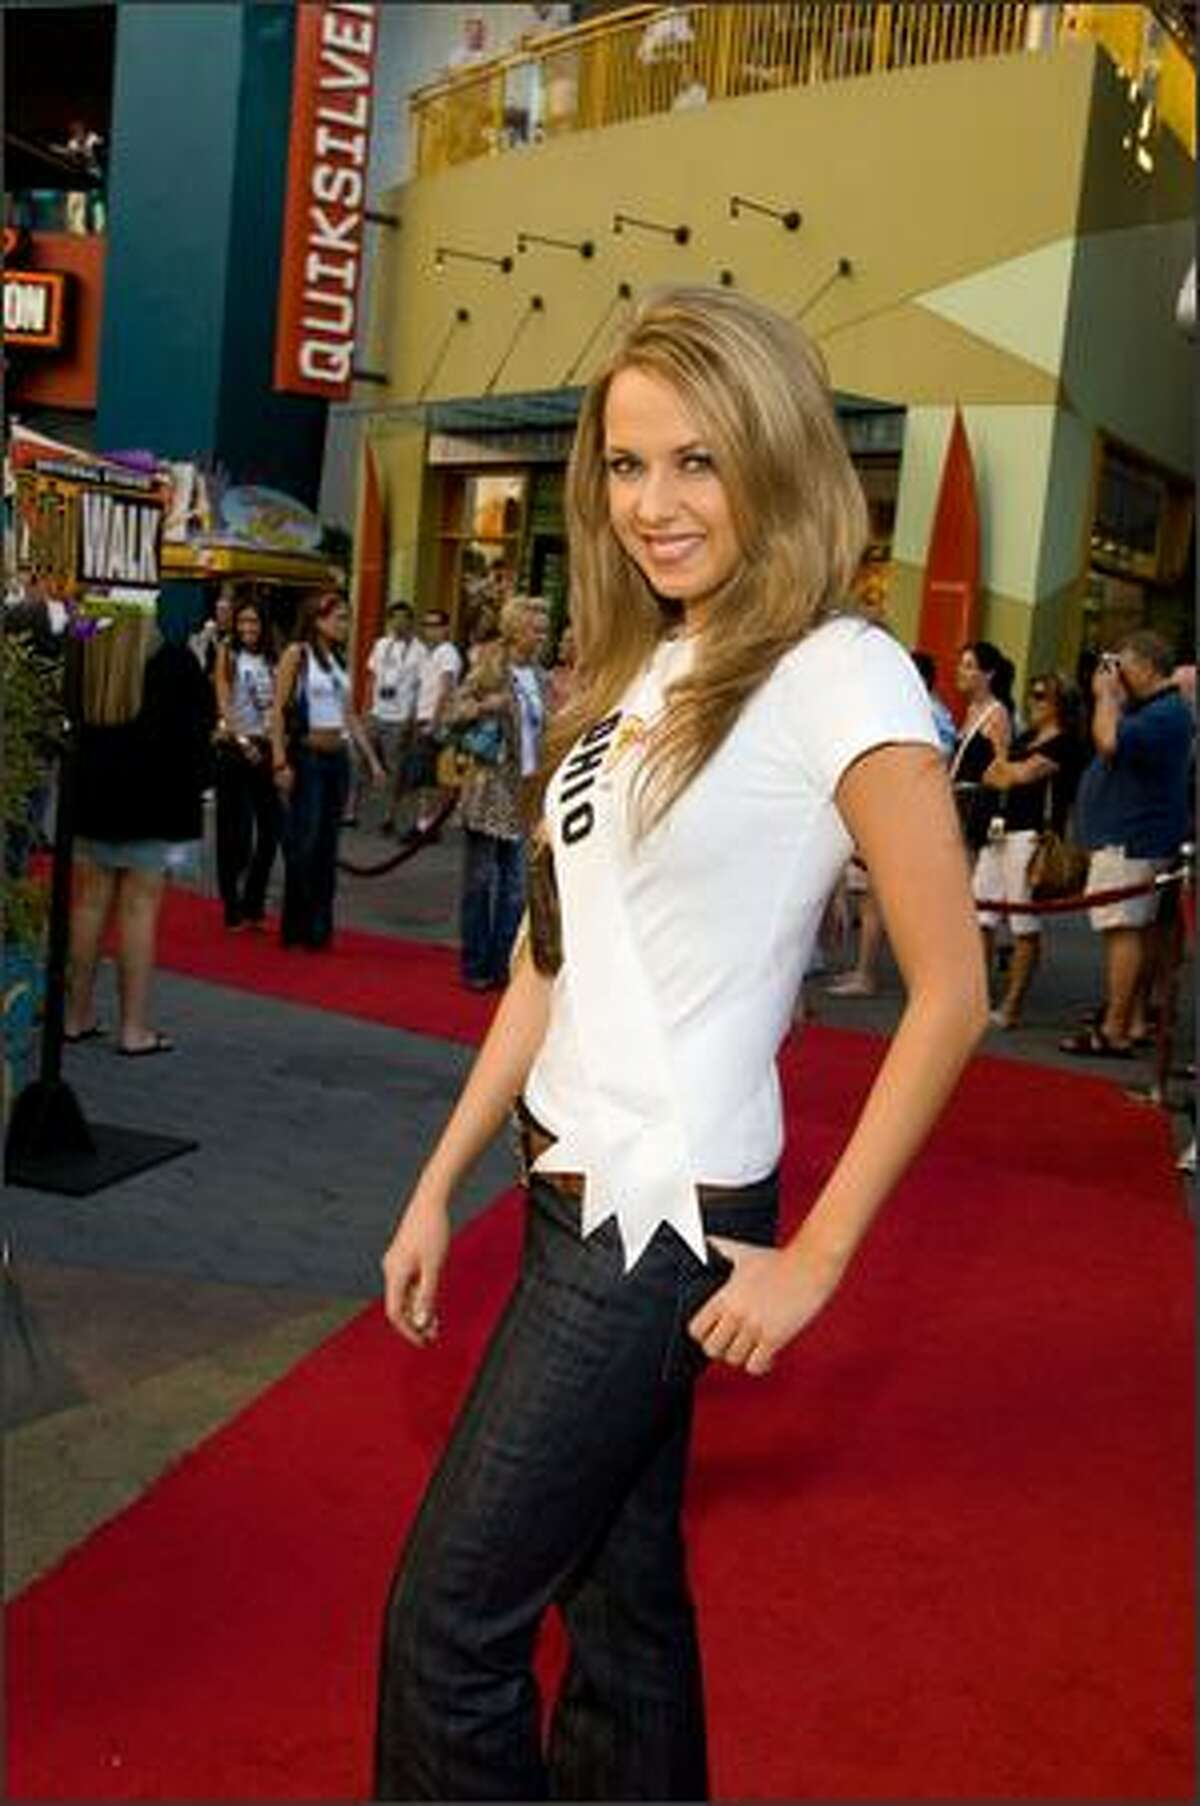 Anna Melomud, Miss Ohio USA 2007, walks the red carpet at the Hard Rock Cafe.